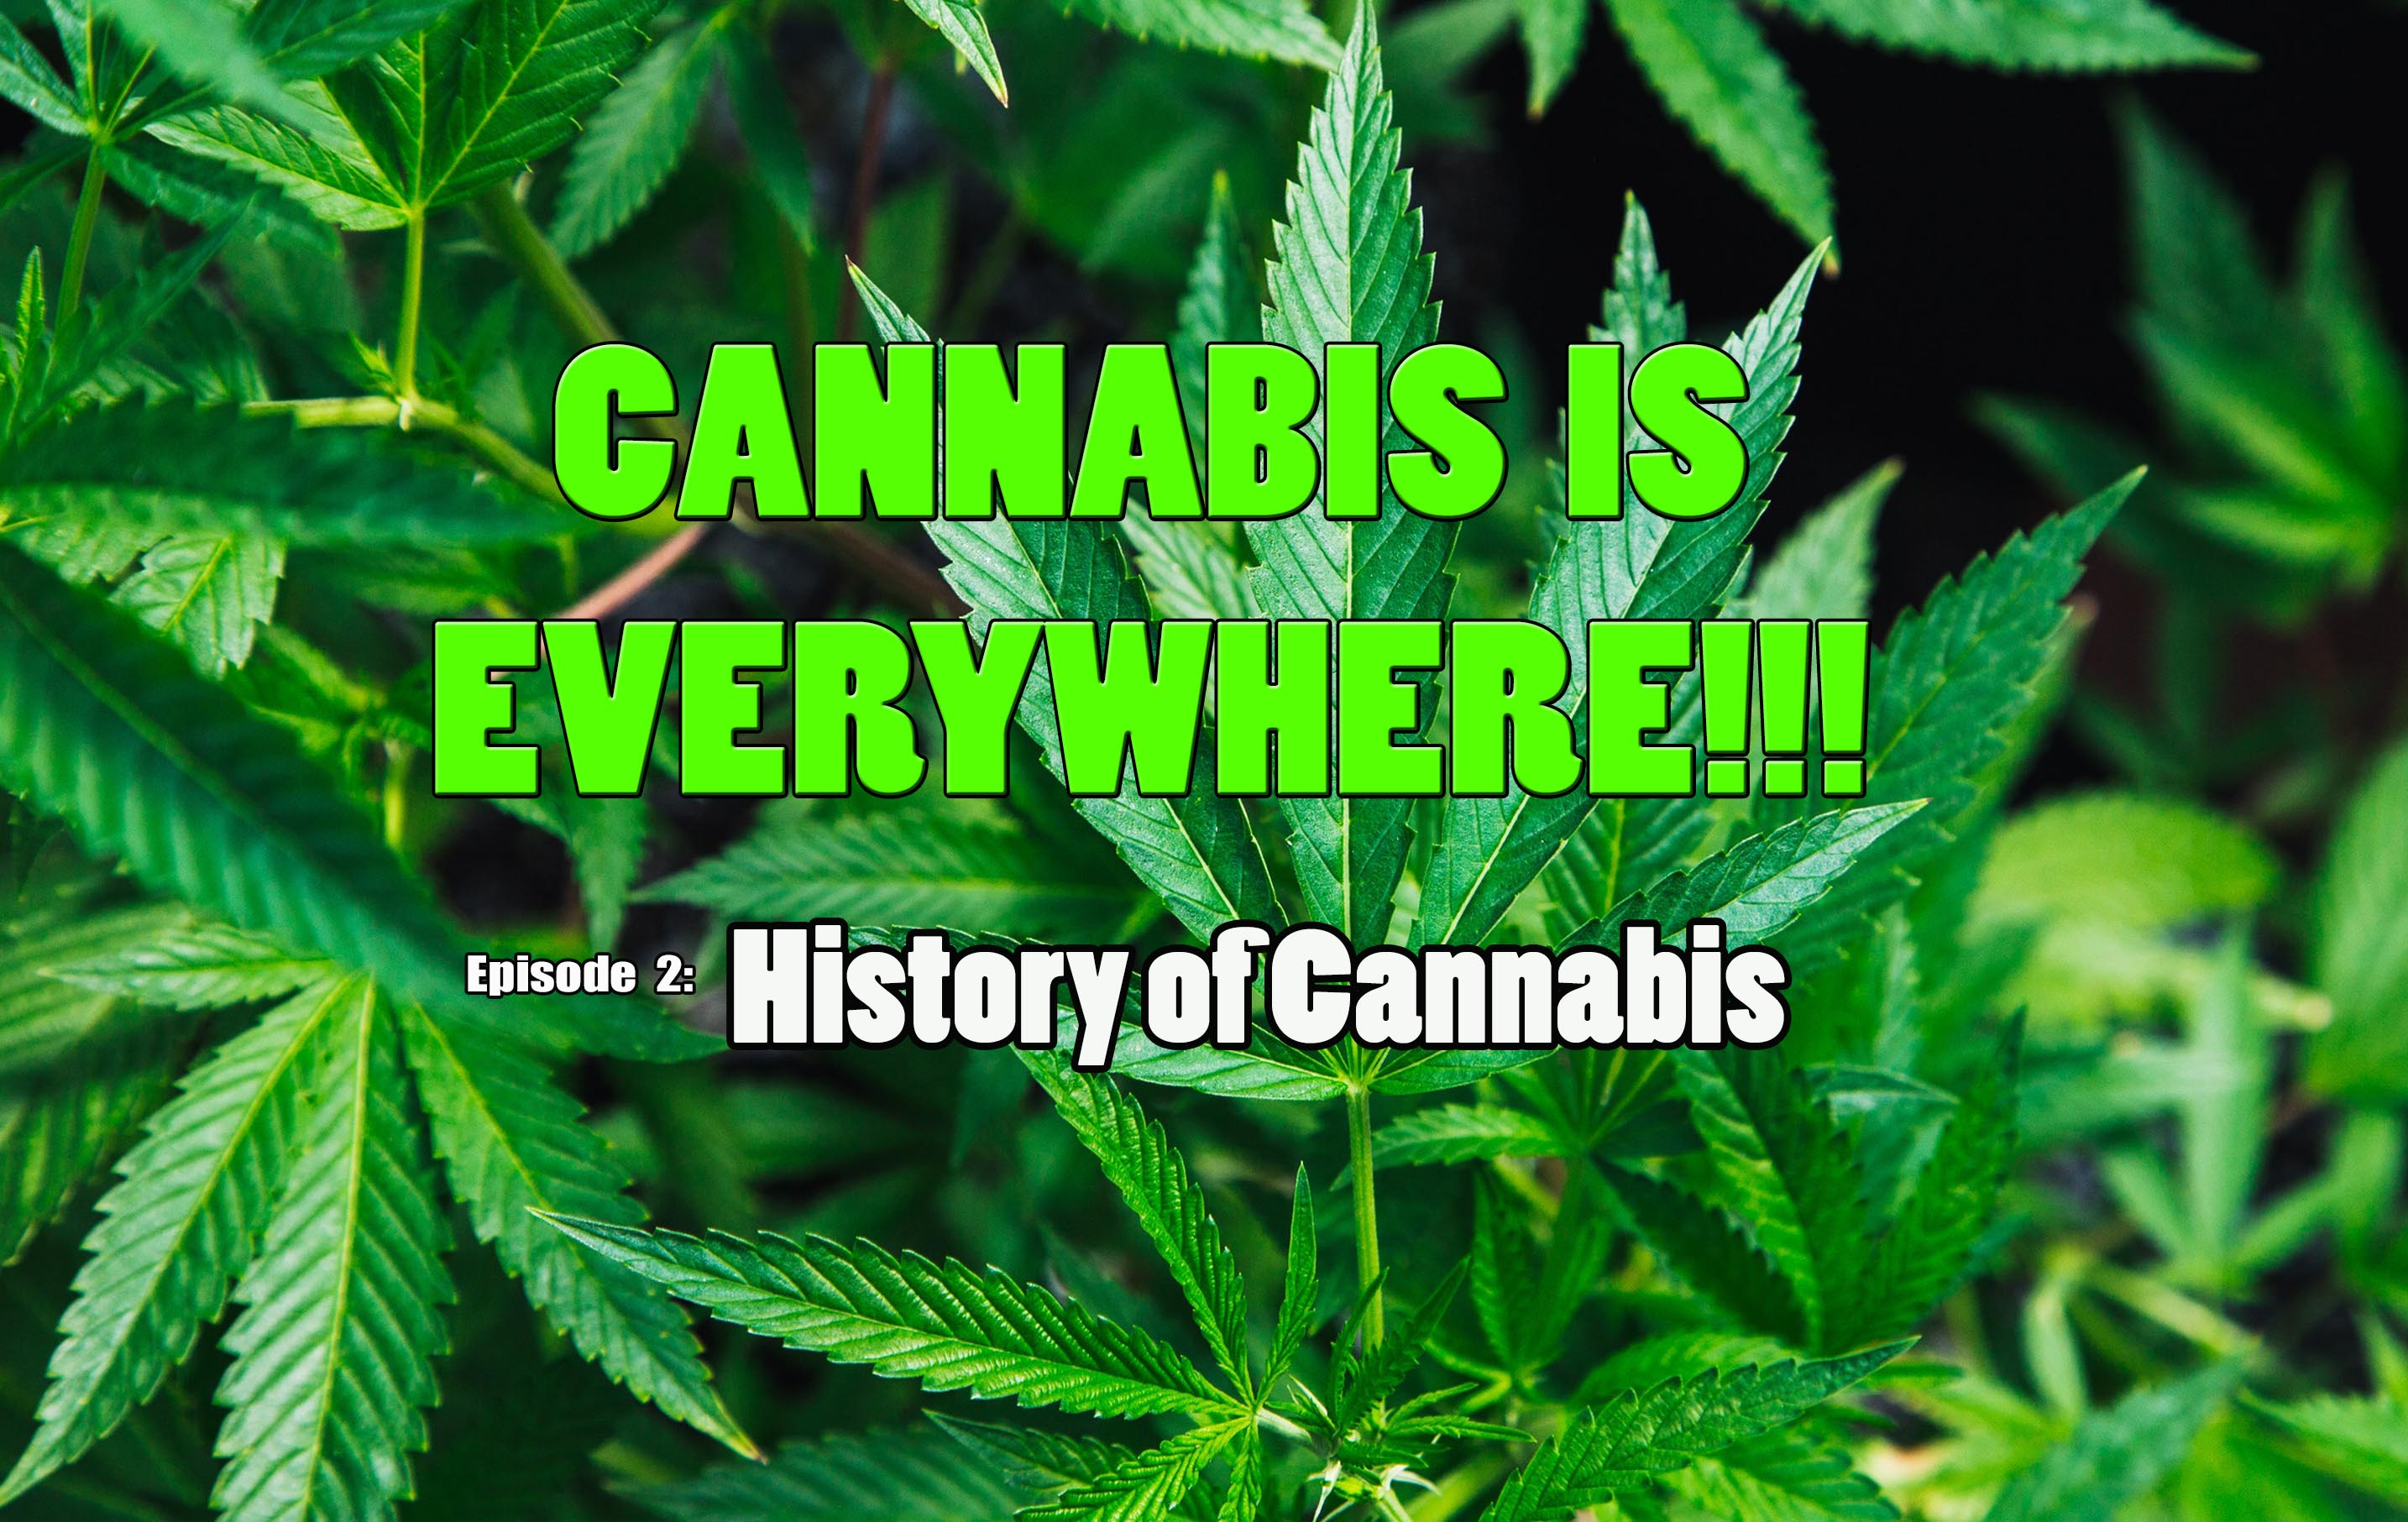 History of Cannabis